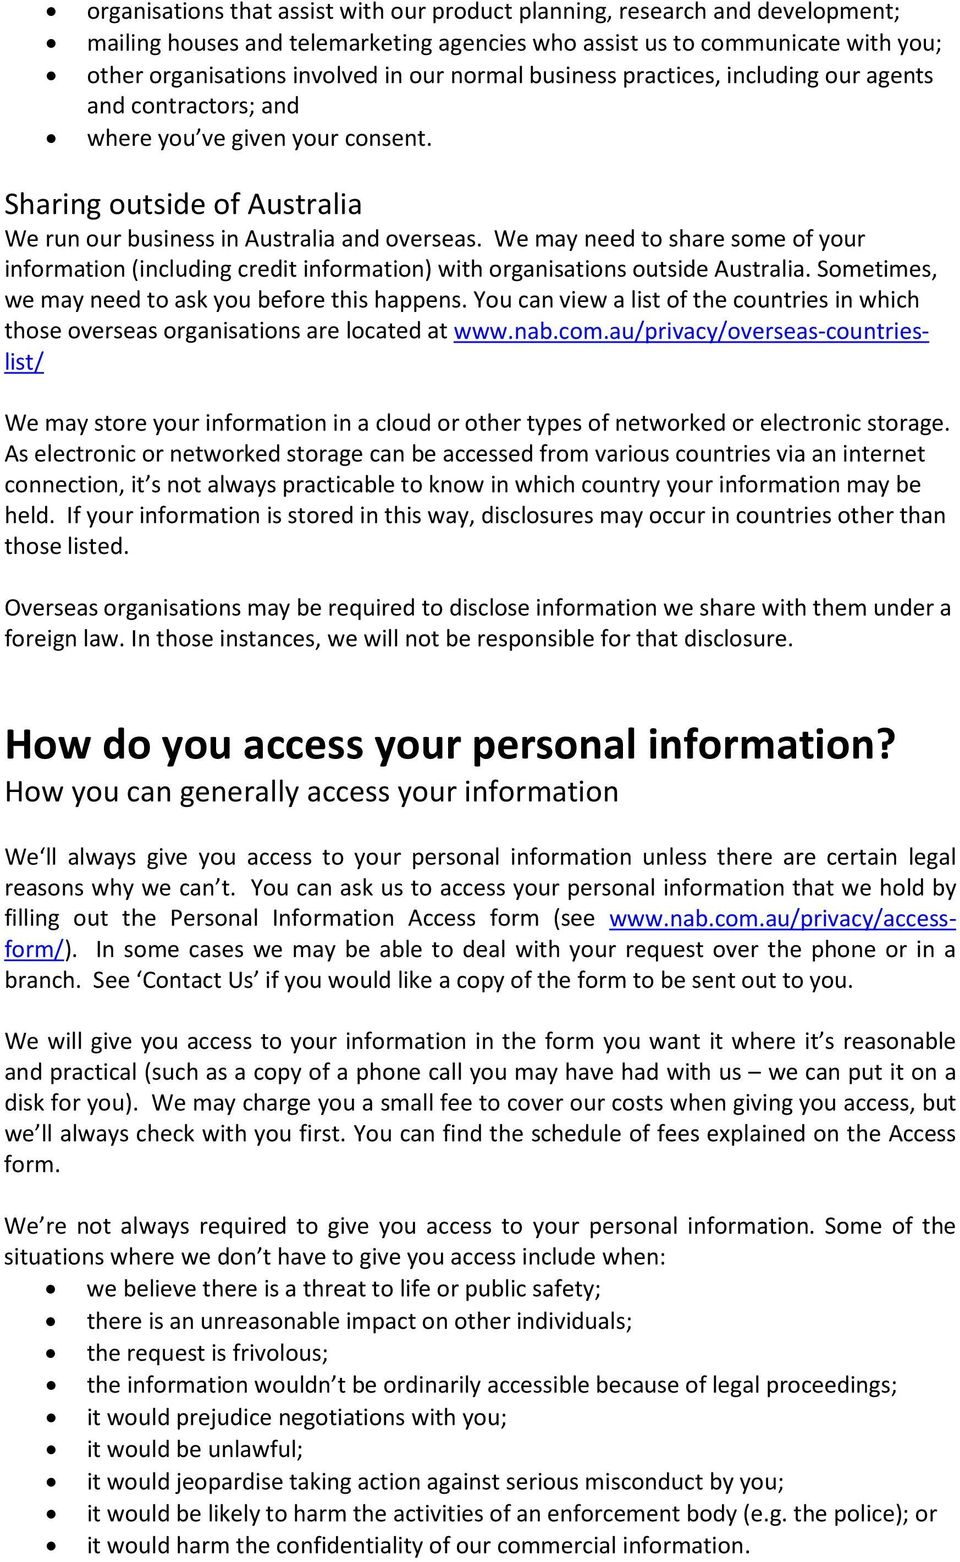 We may need to share some of your information (including credit information) with organisations outside Australia. Sometimes, we may need to ask you before this happens.